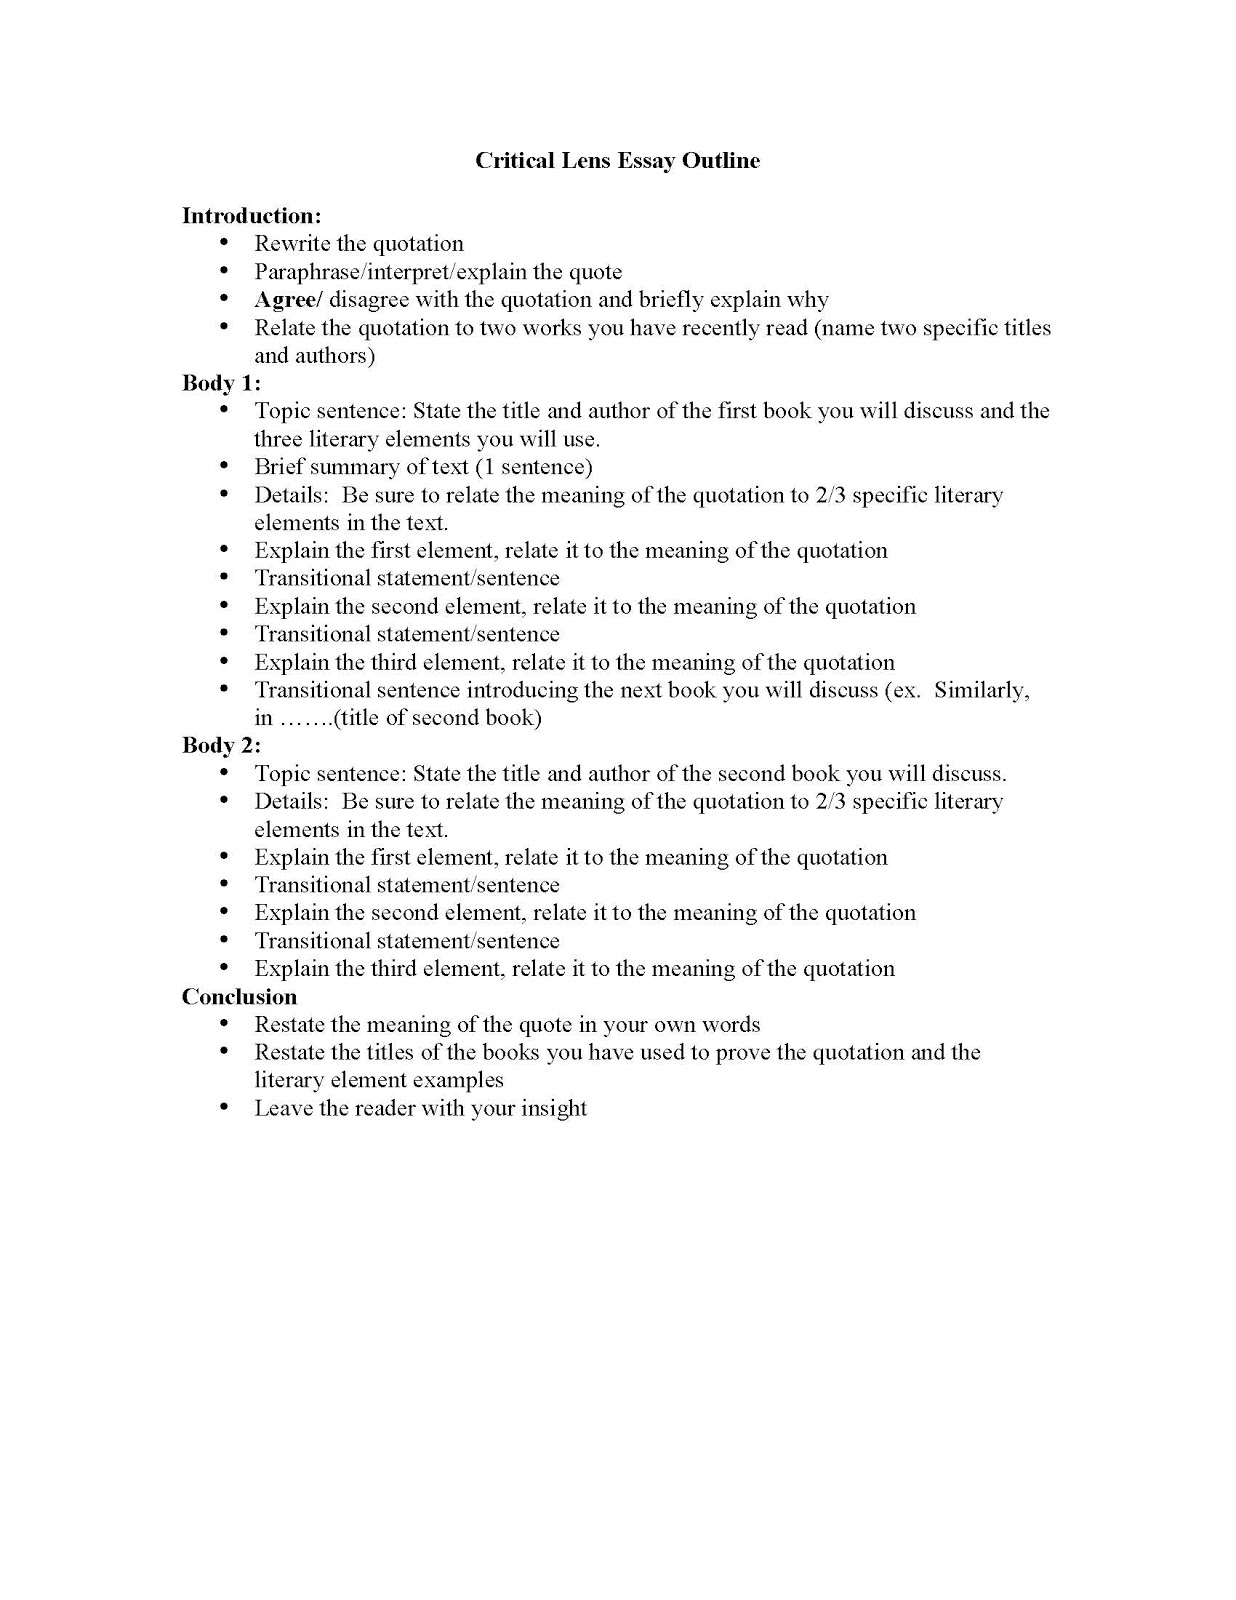 009 Descriptive Essay Outline Critical20lens20essay20outline20and20literay20elements Page 1 Outstanding Examples Template Pdf About A Person Full